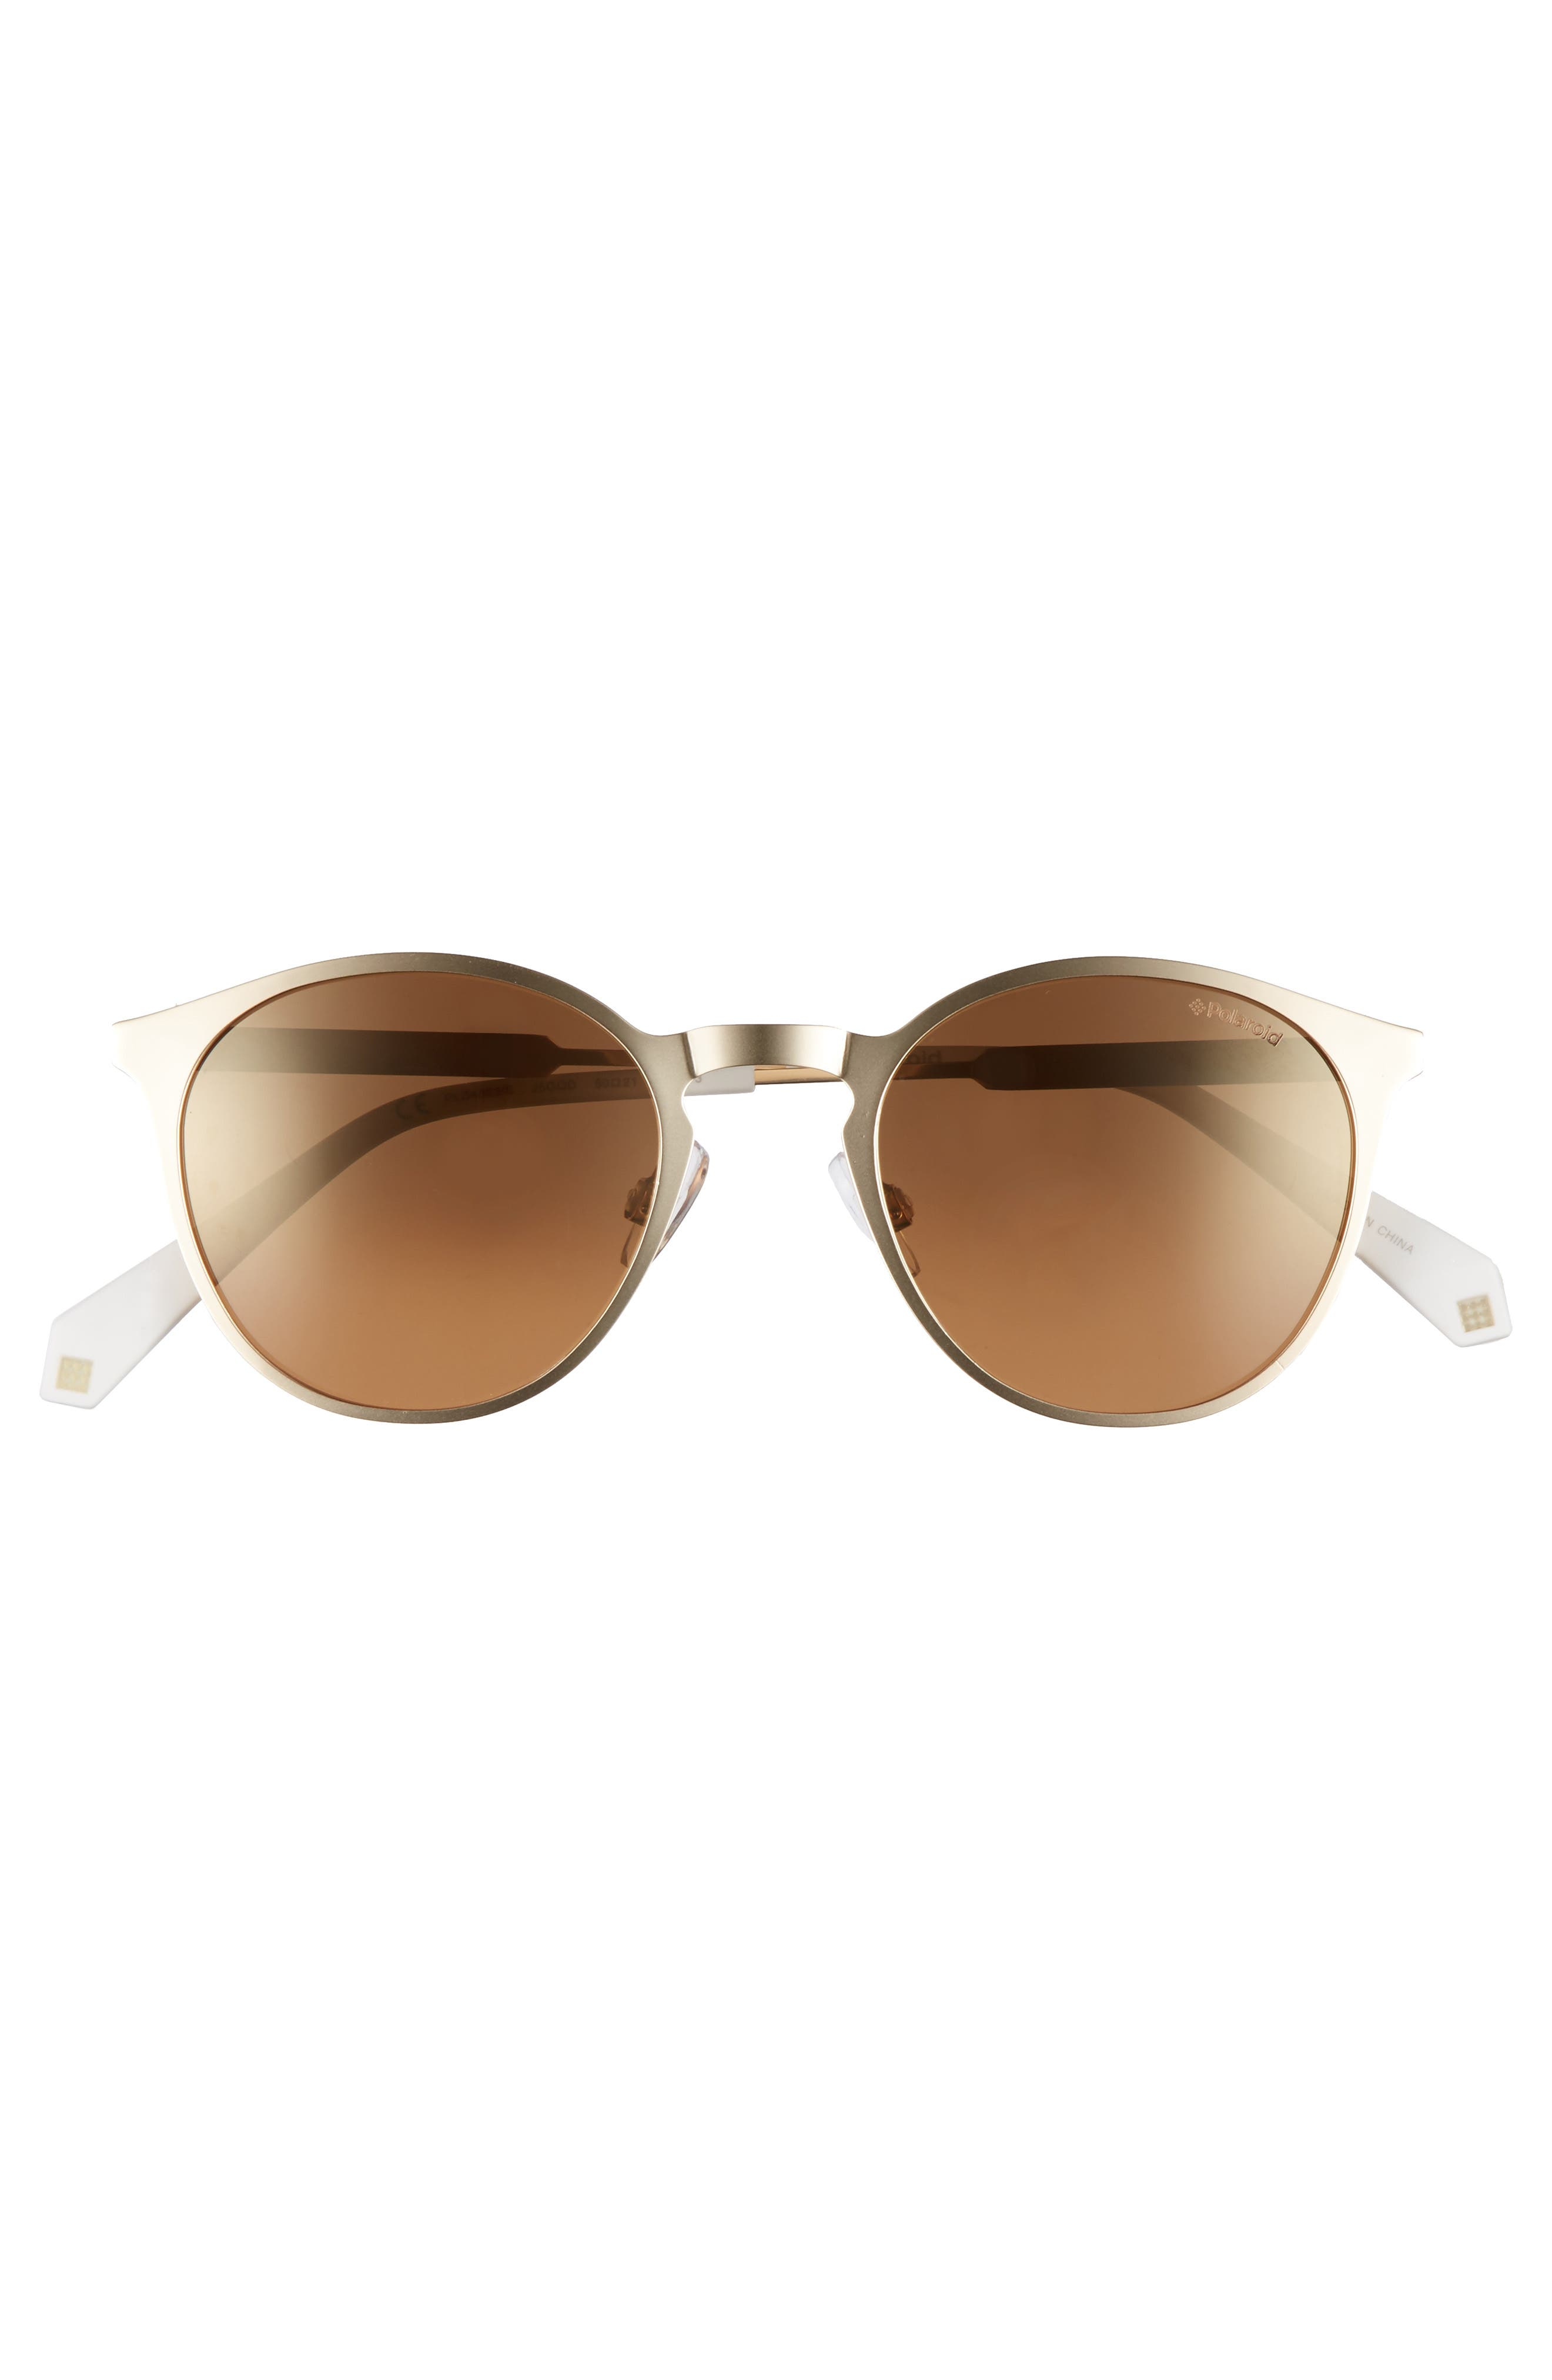 50mm Round Polarized Sunglasses,                             Alternate thumbnail 3, color,                             Gold